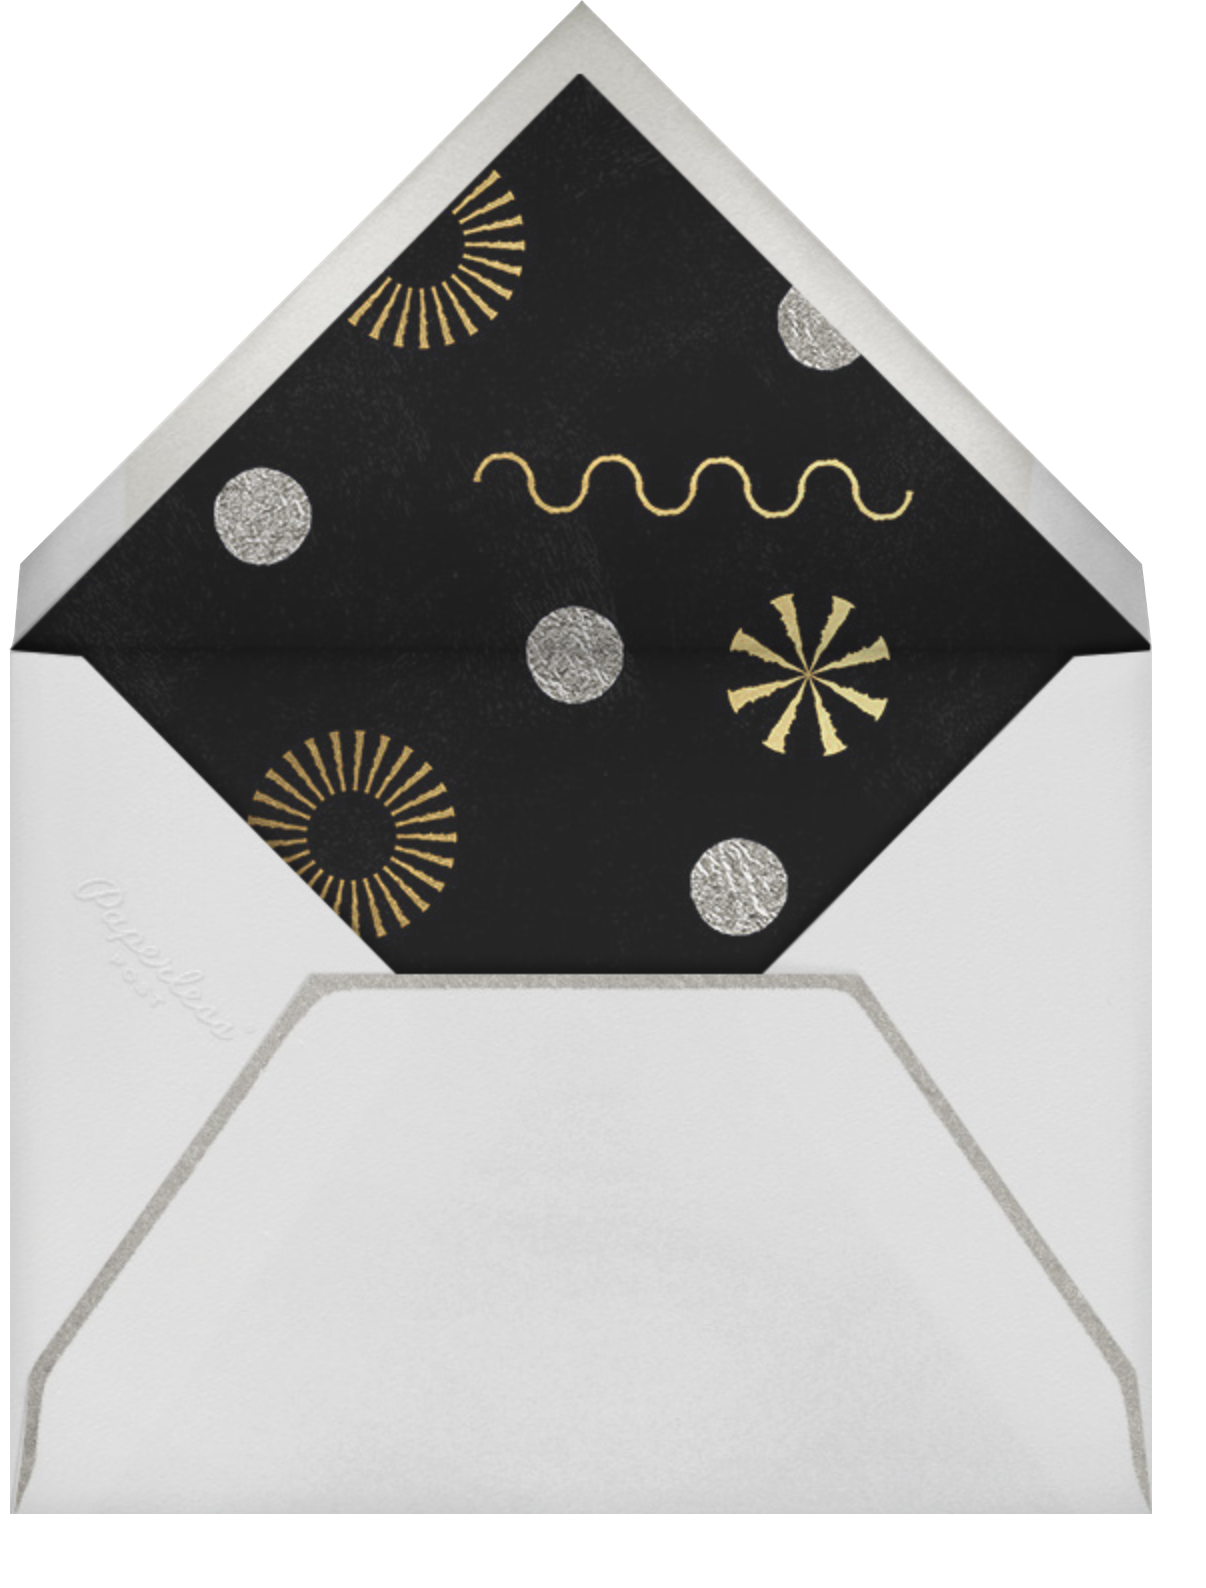 Deco New Year's Photo - Paperless Post - New Year - envelope back